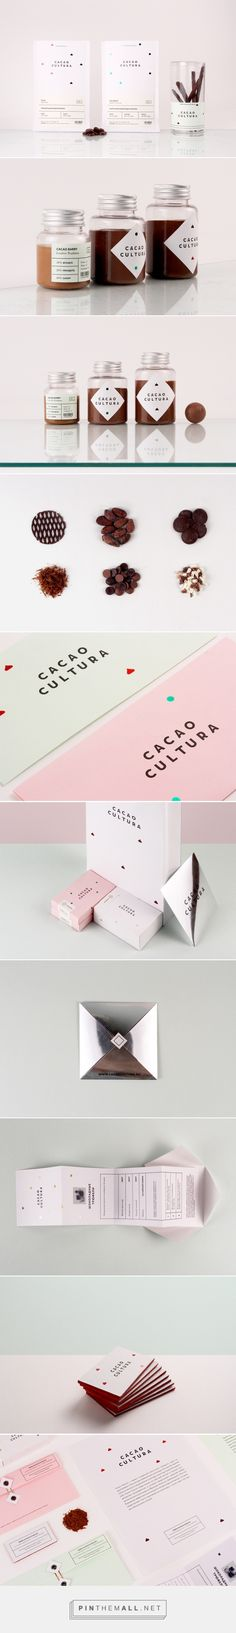 Cacao Cultura Designed by Vladimir Shlygin #packaging #branding #identity